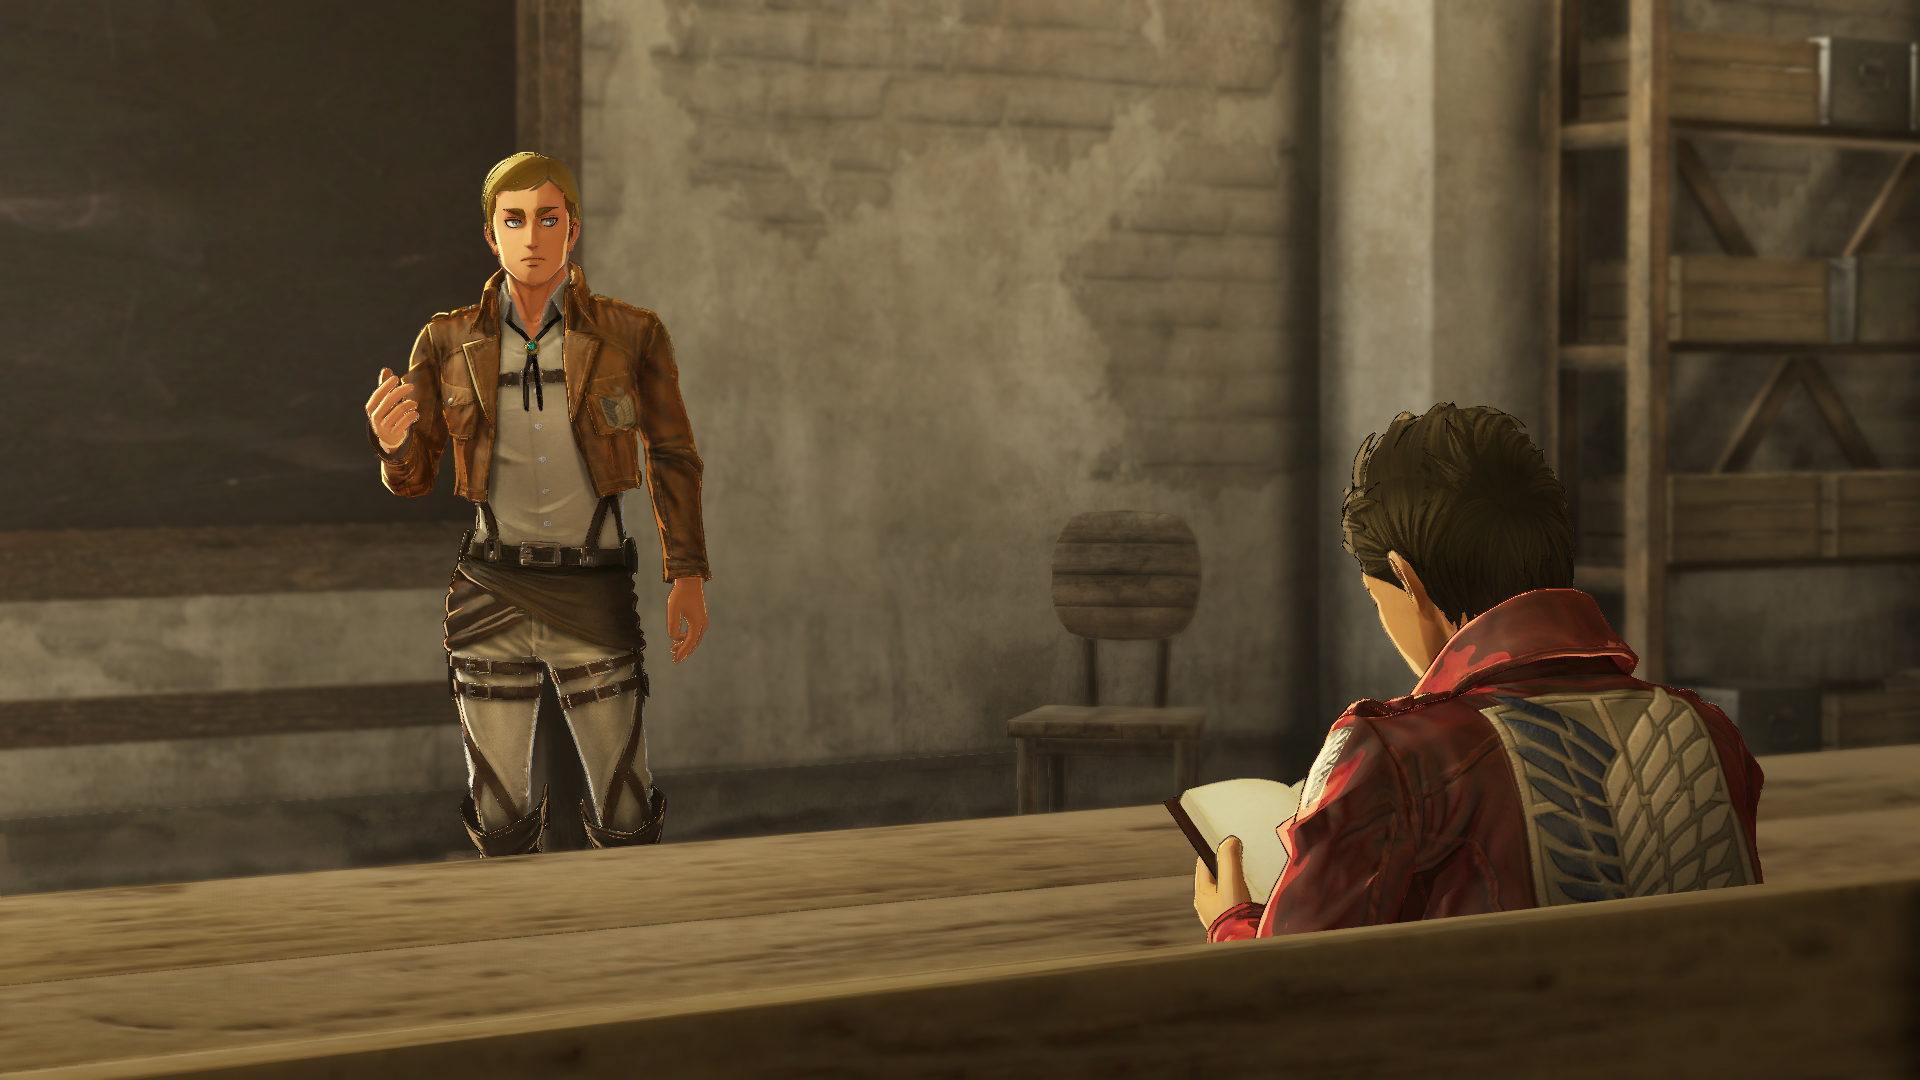 Custom All Stars >> Attack On Titan 2 Gets New Details On Character Creation And Town Life Features | Gaming Union